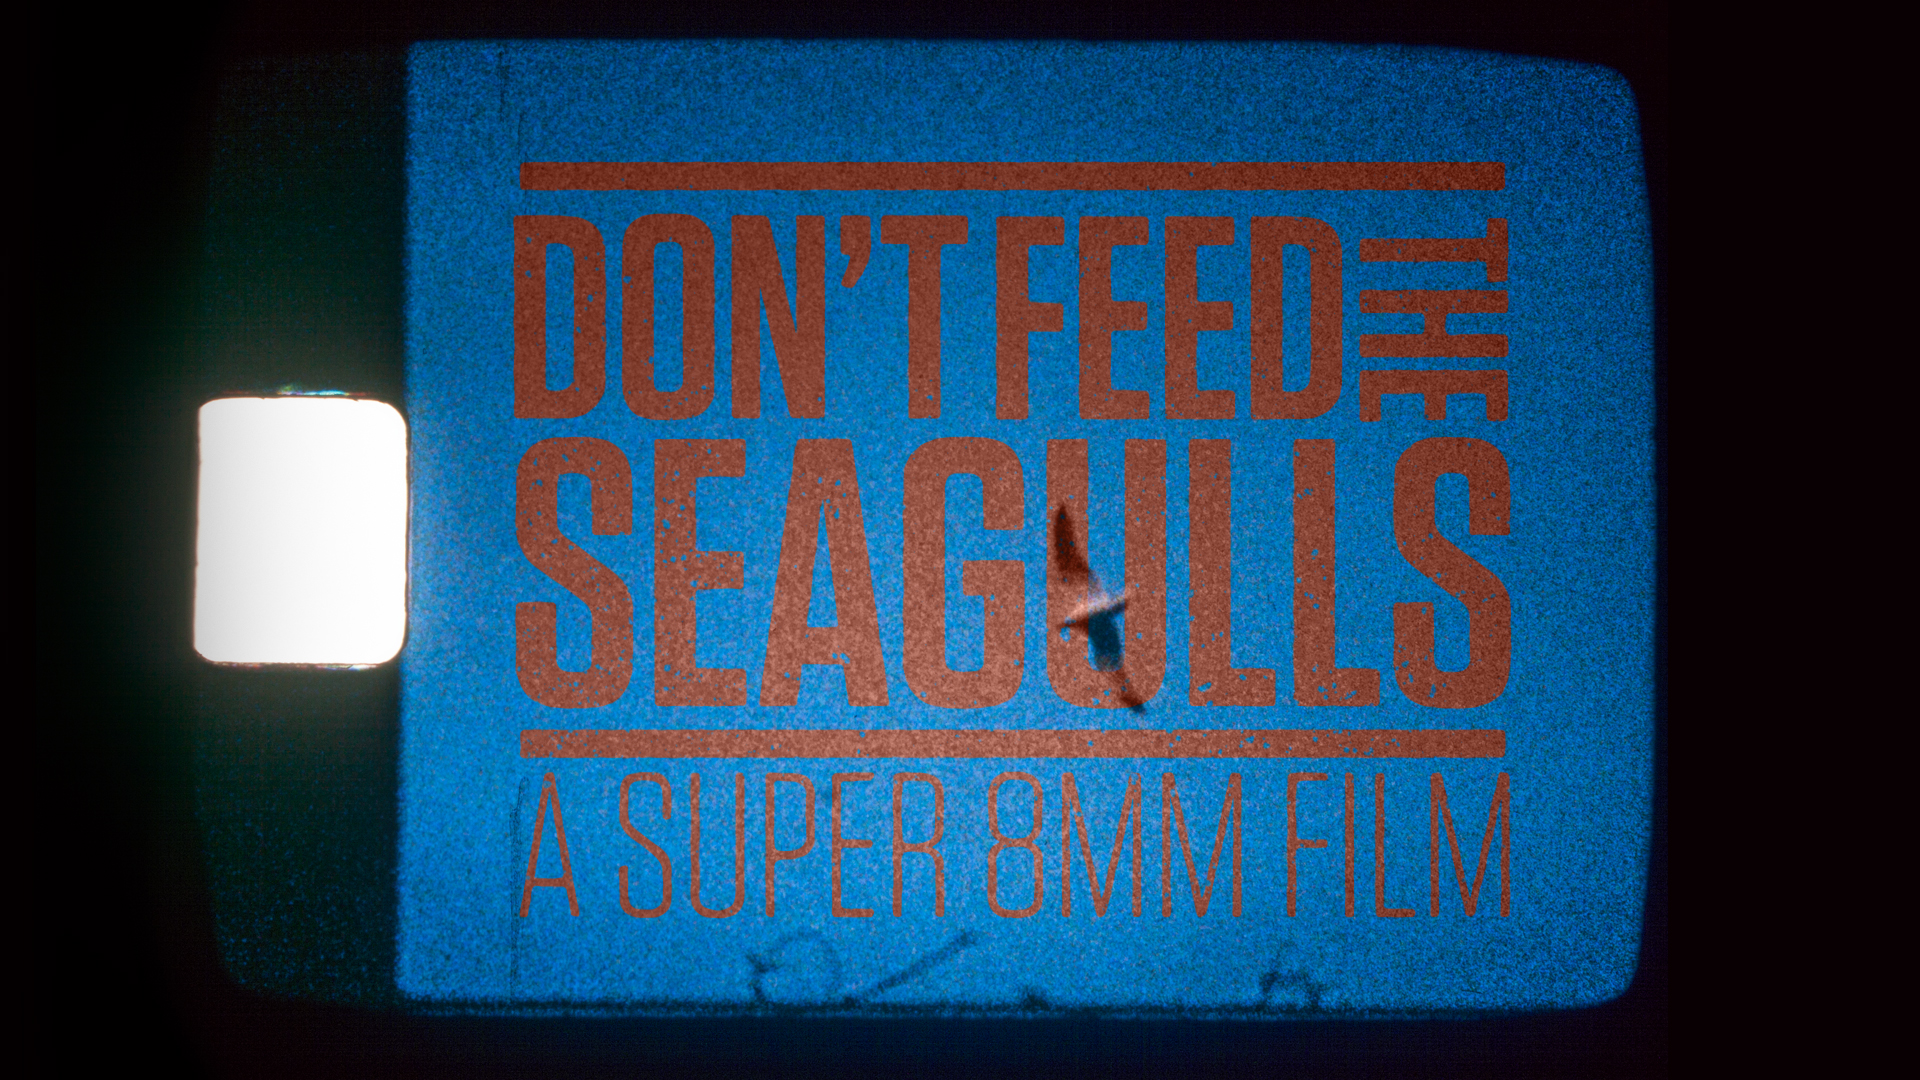 dont feed the seagulls super 8mm film